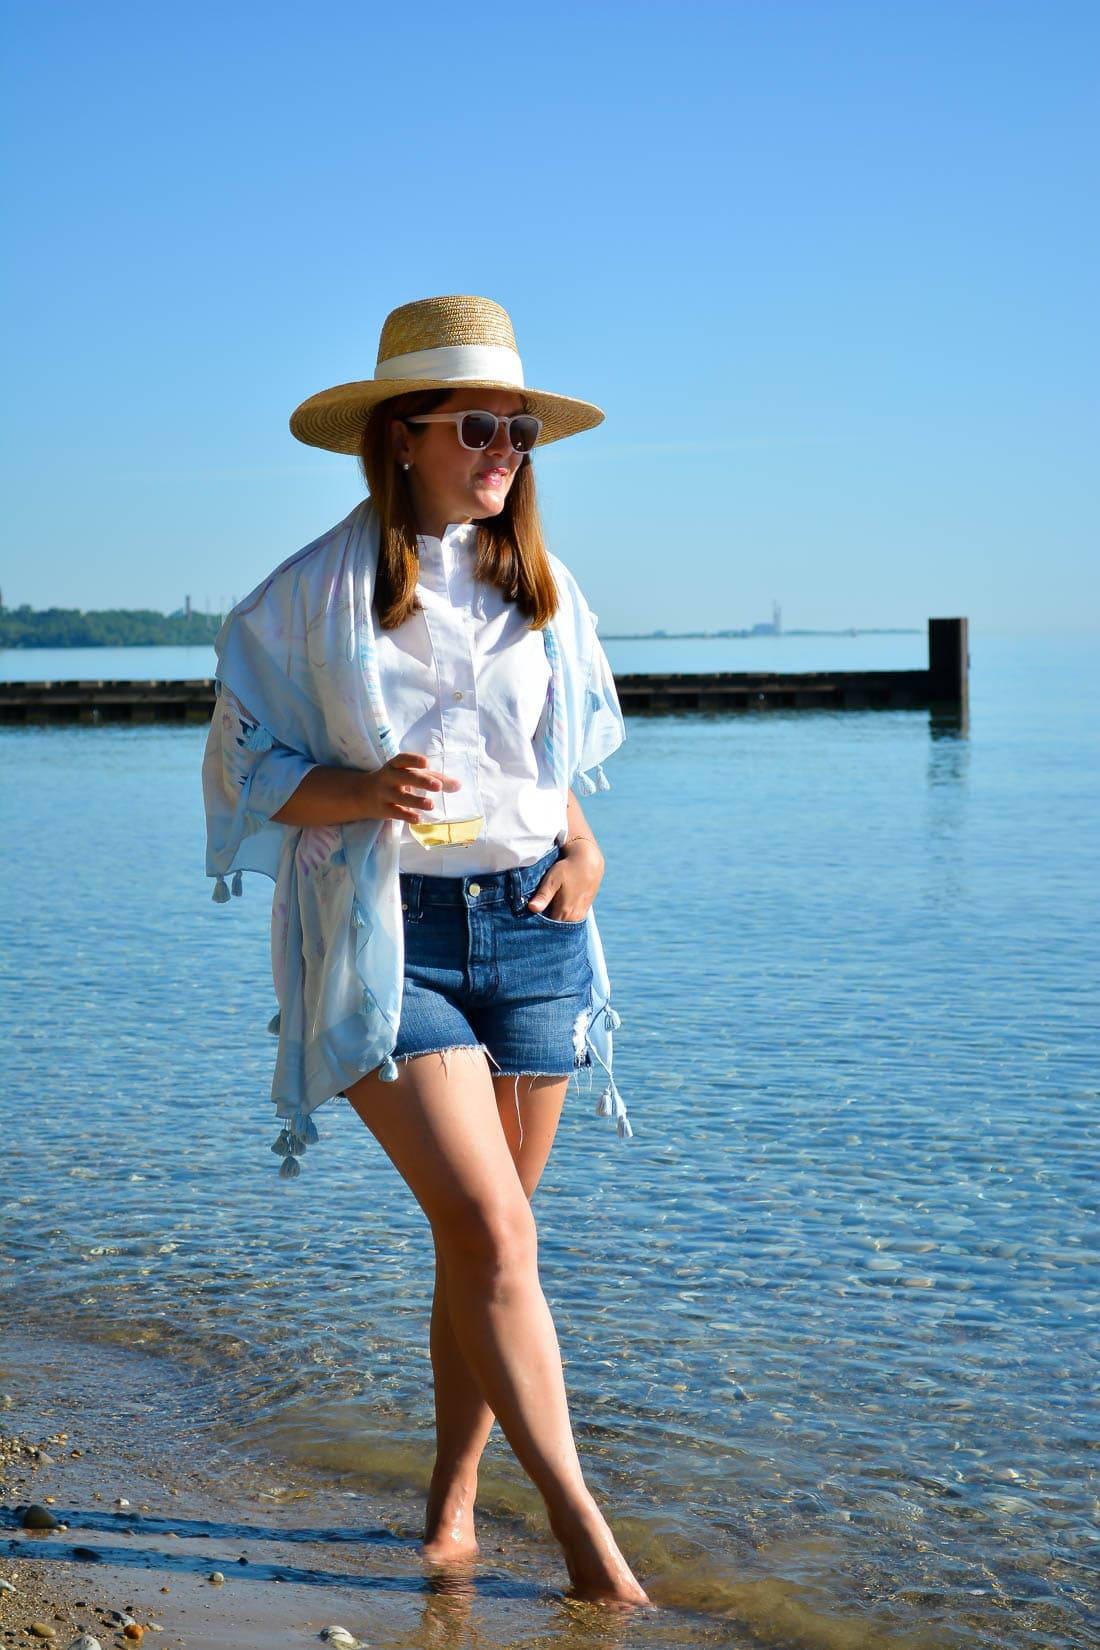 #LoveofTheJourney, Wente Wines, Chicago Blogger, J.Crew Straw Hat, Diistressed Denim Shorts, Lou & Grey Scarf, Lake Bluff Beach